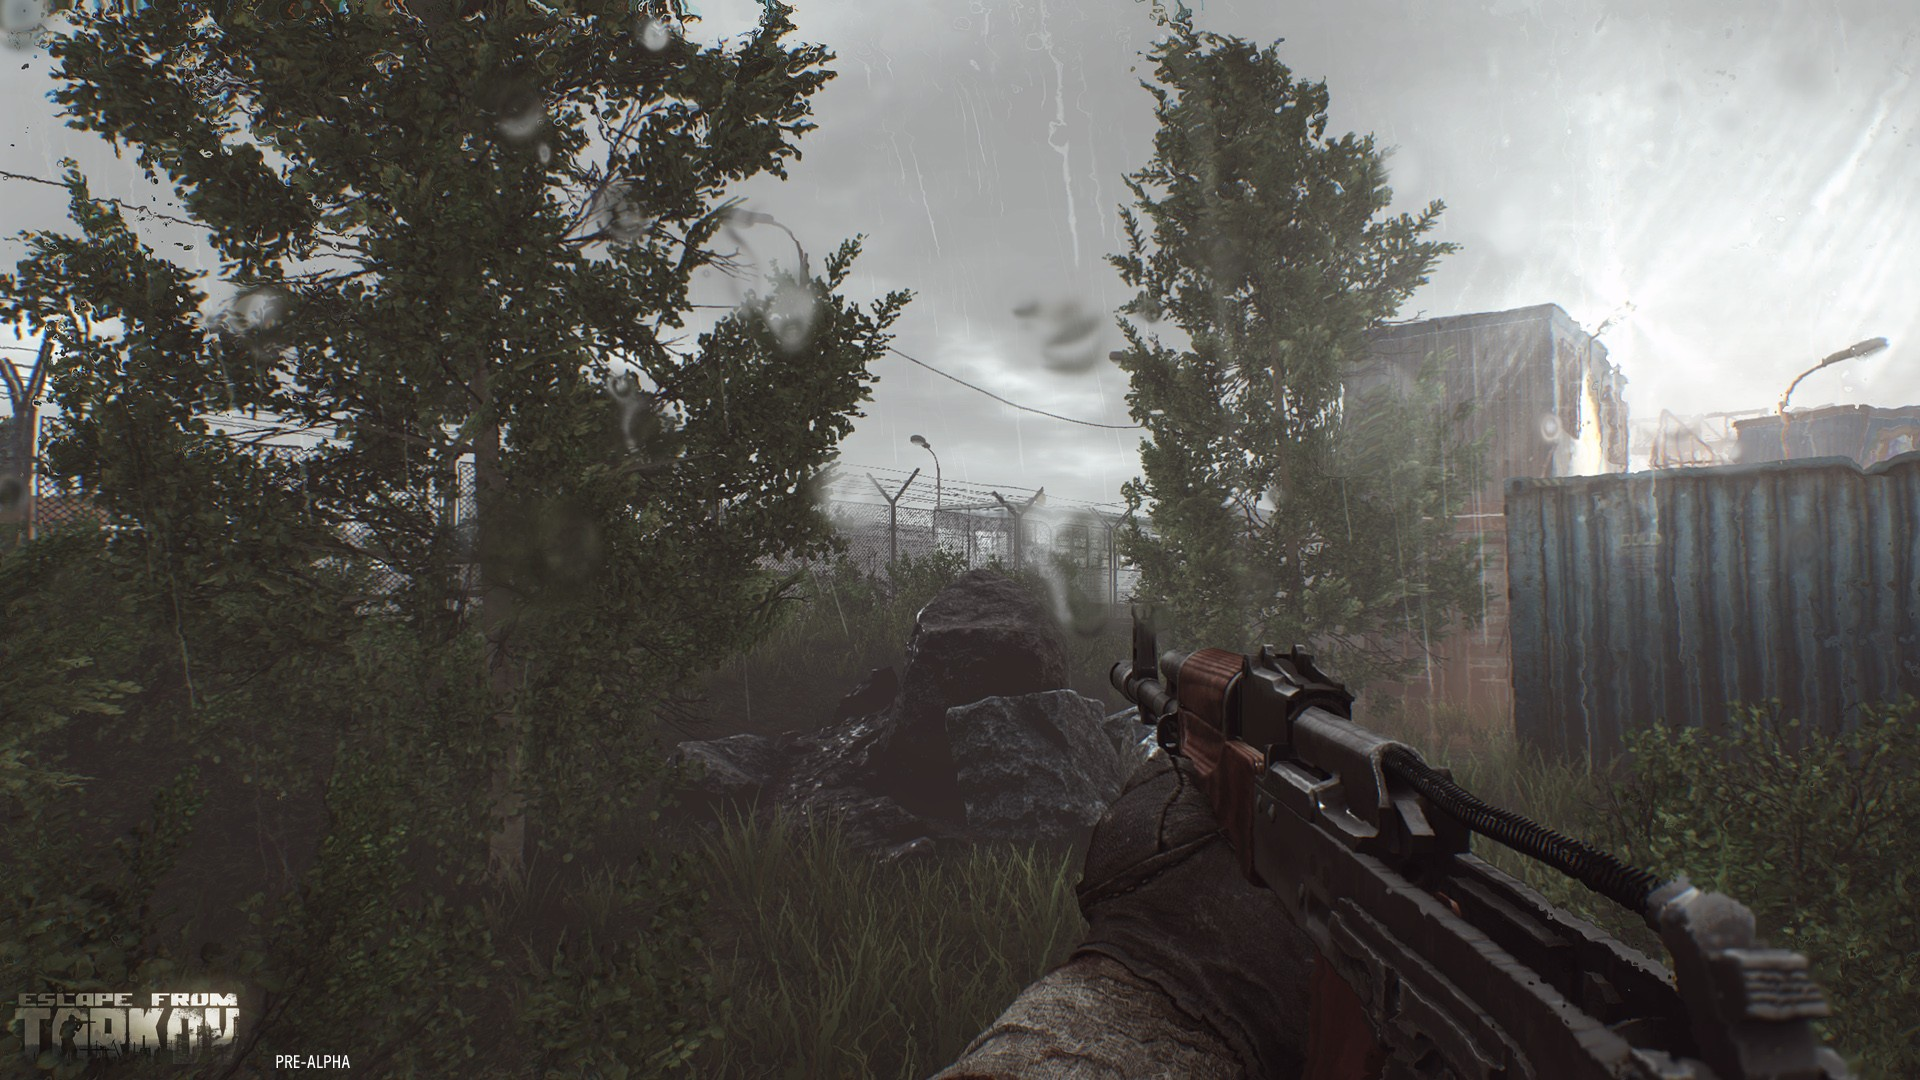 1440p Wallpaper Girls War Game Escape From Tarkov First Person Shooter